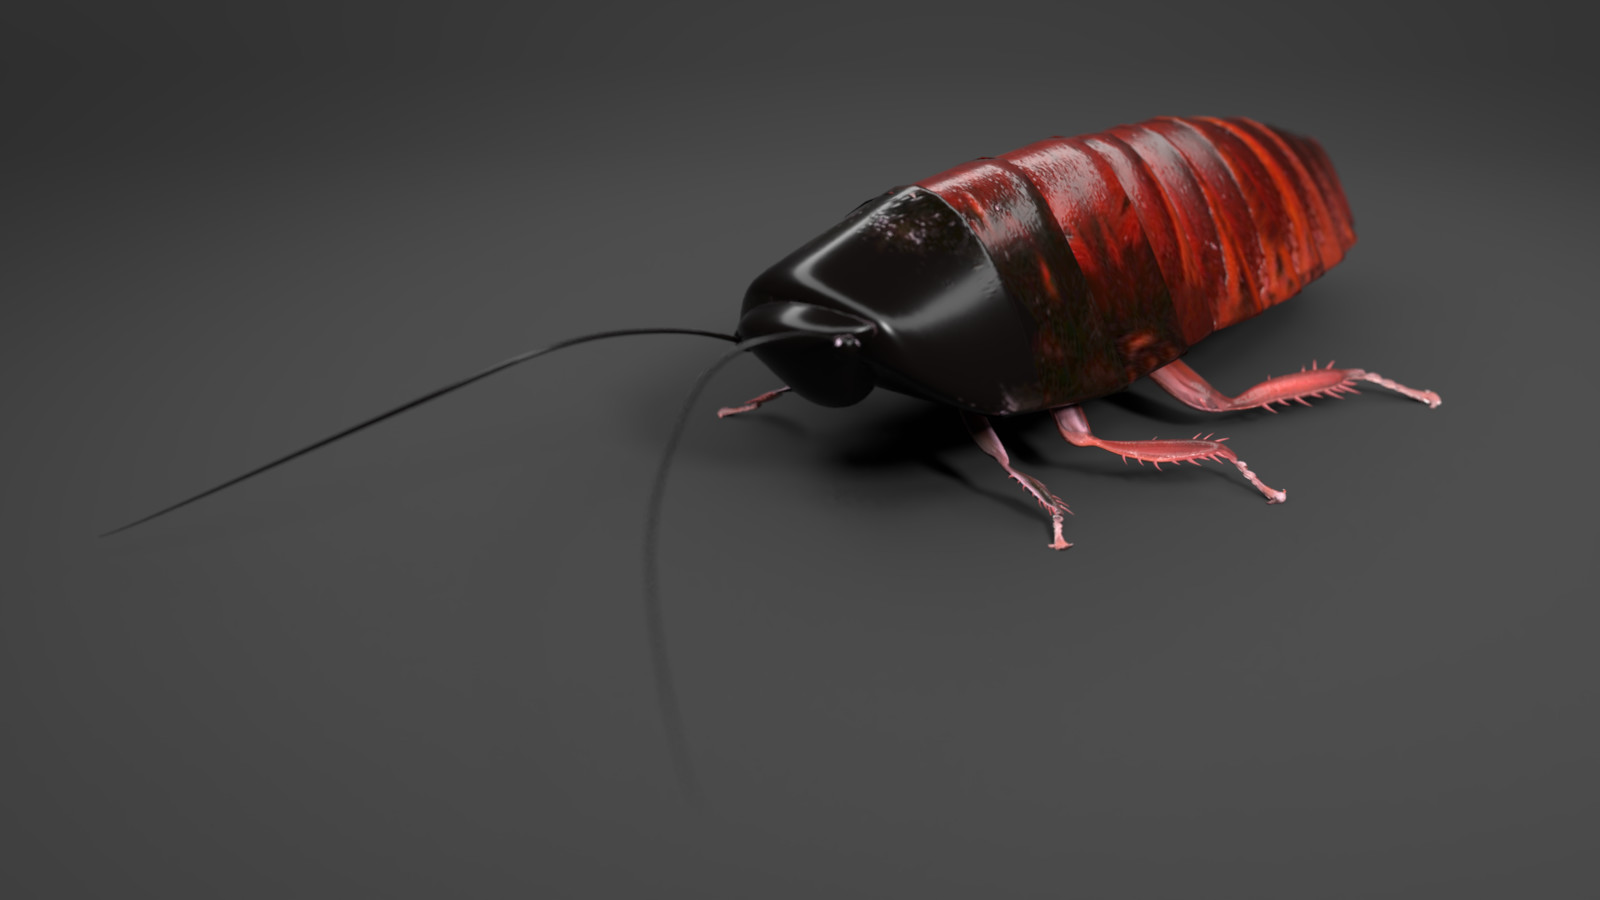 Rigged & animated 3D cockroach